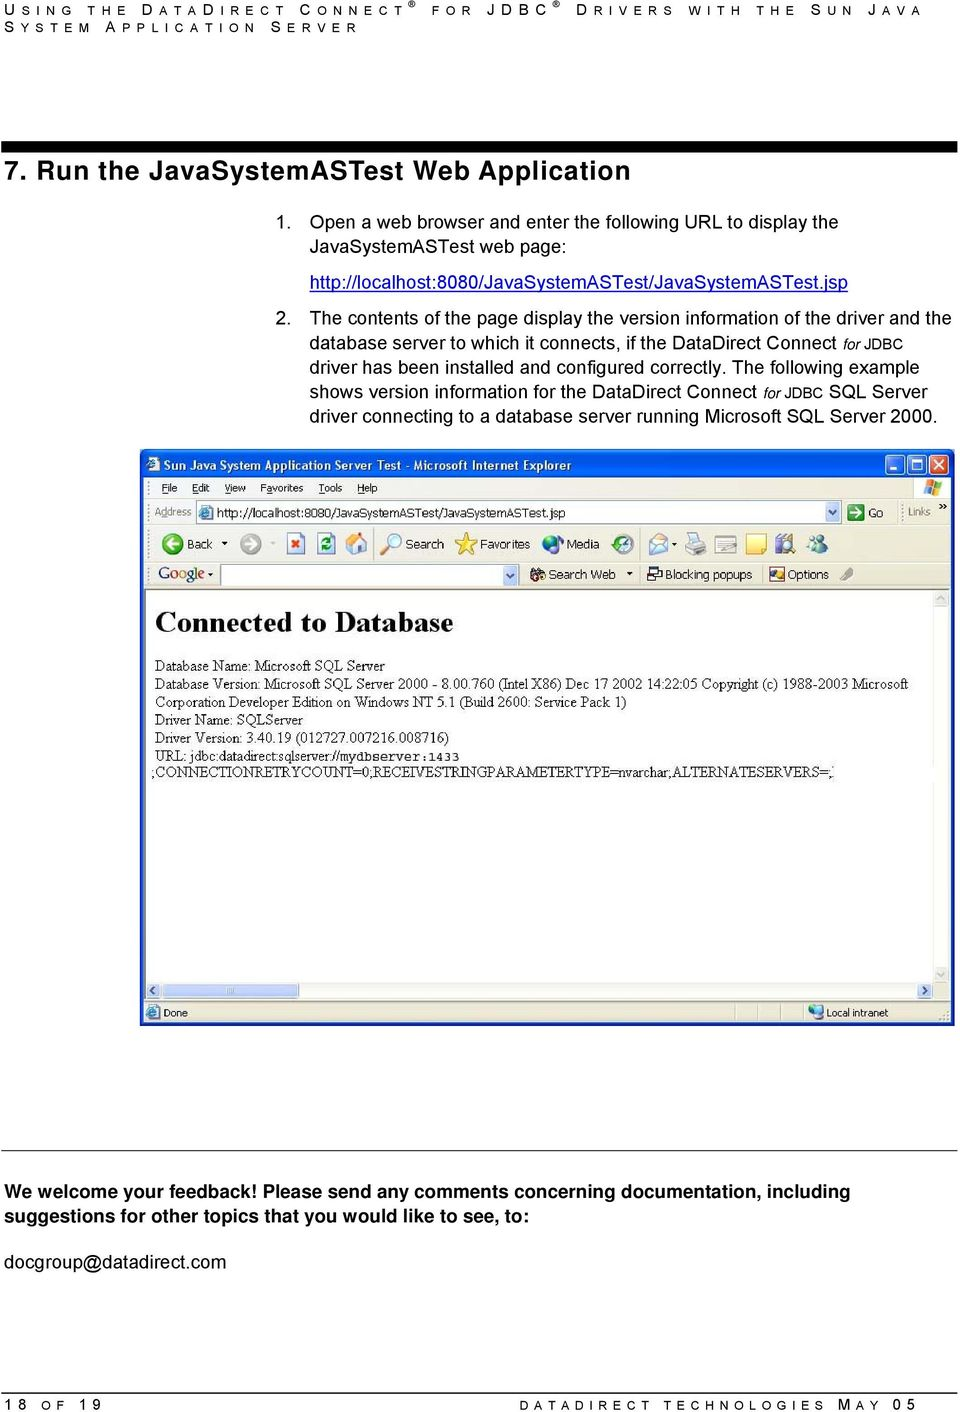 The contents of the page display the version information of the driver and the database server to which it connects, if the DataDirect Connect for JDBC driver has been installed and configured